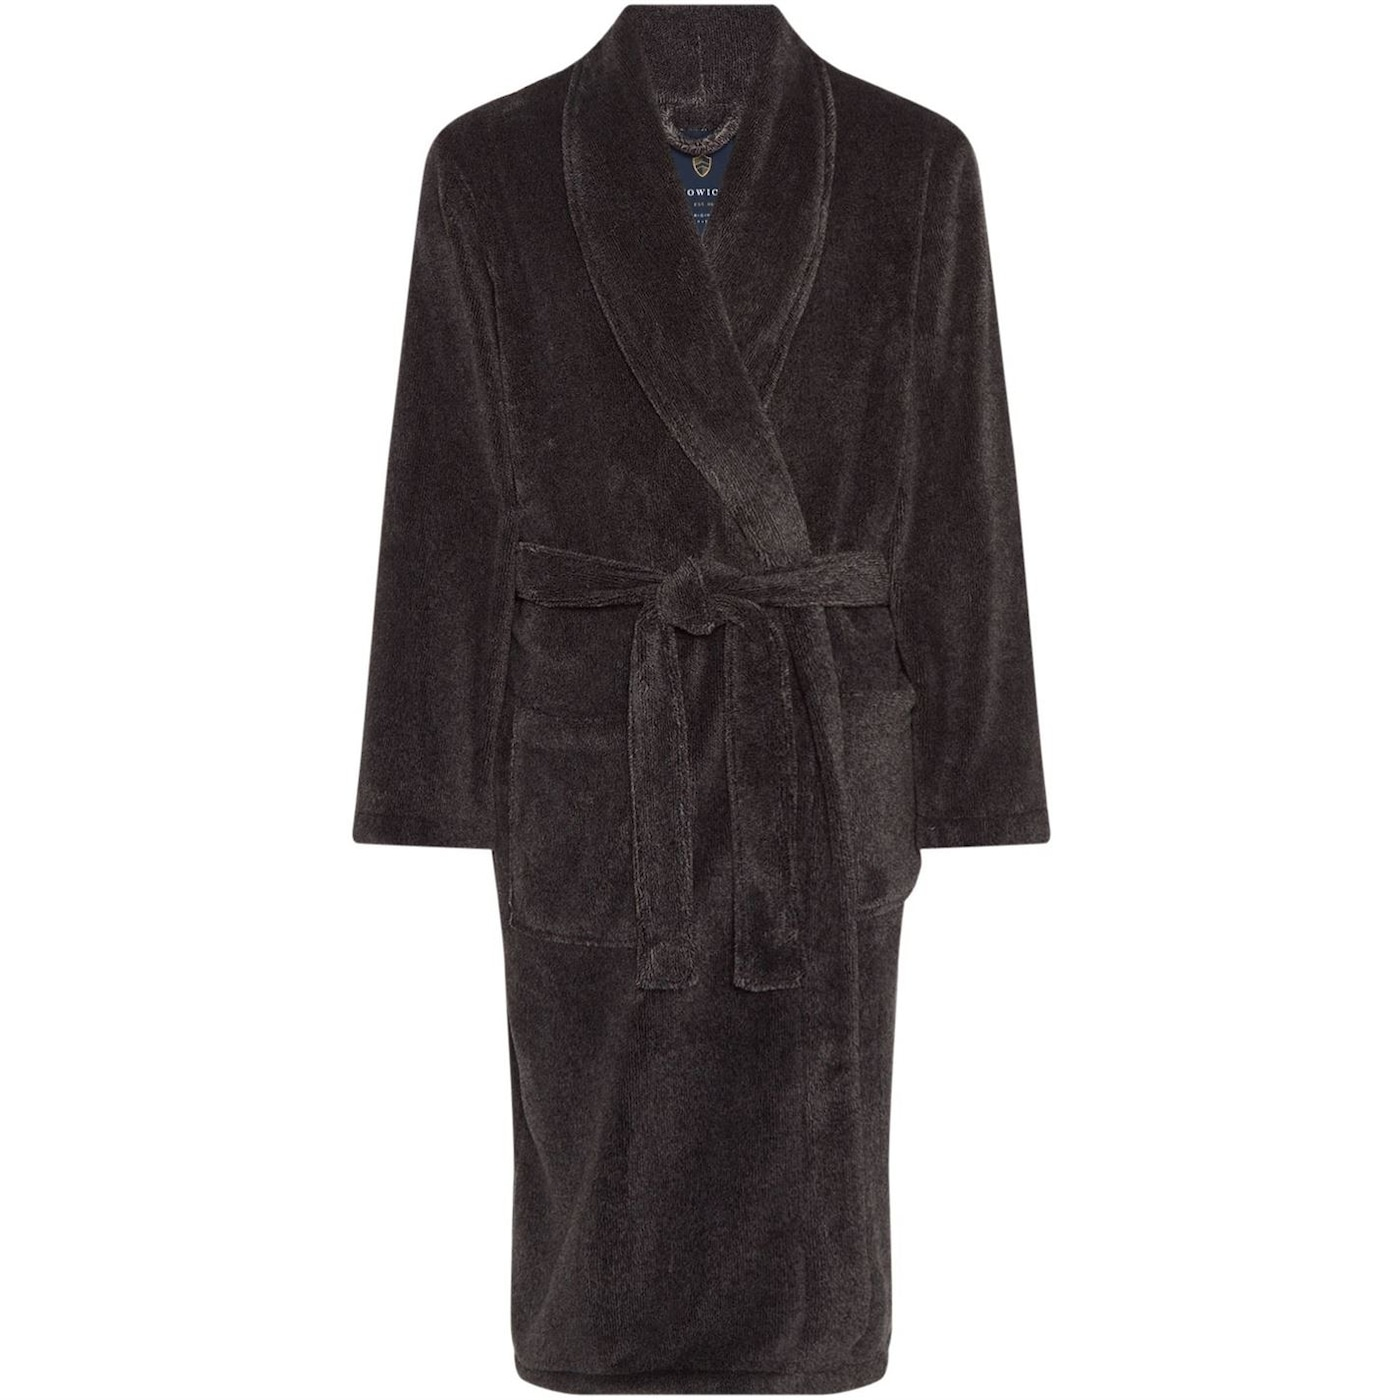 Howick Classic Charcoal Marl Fleece Dressing Gown